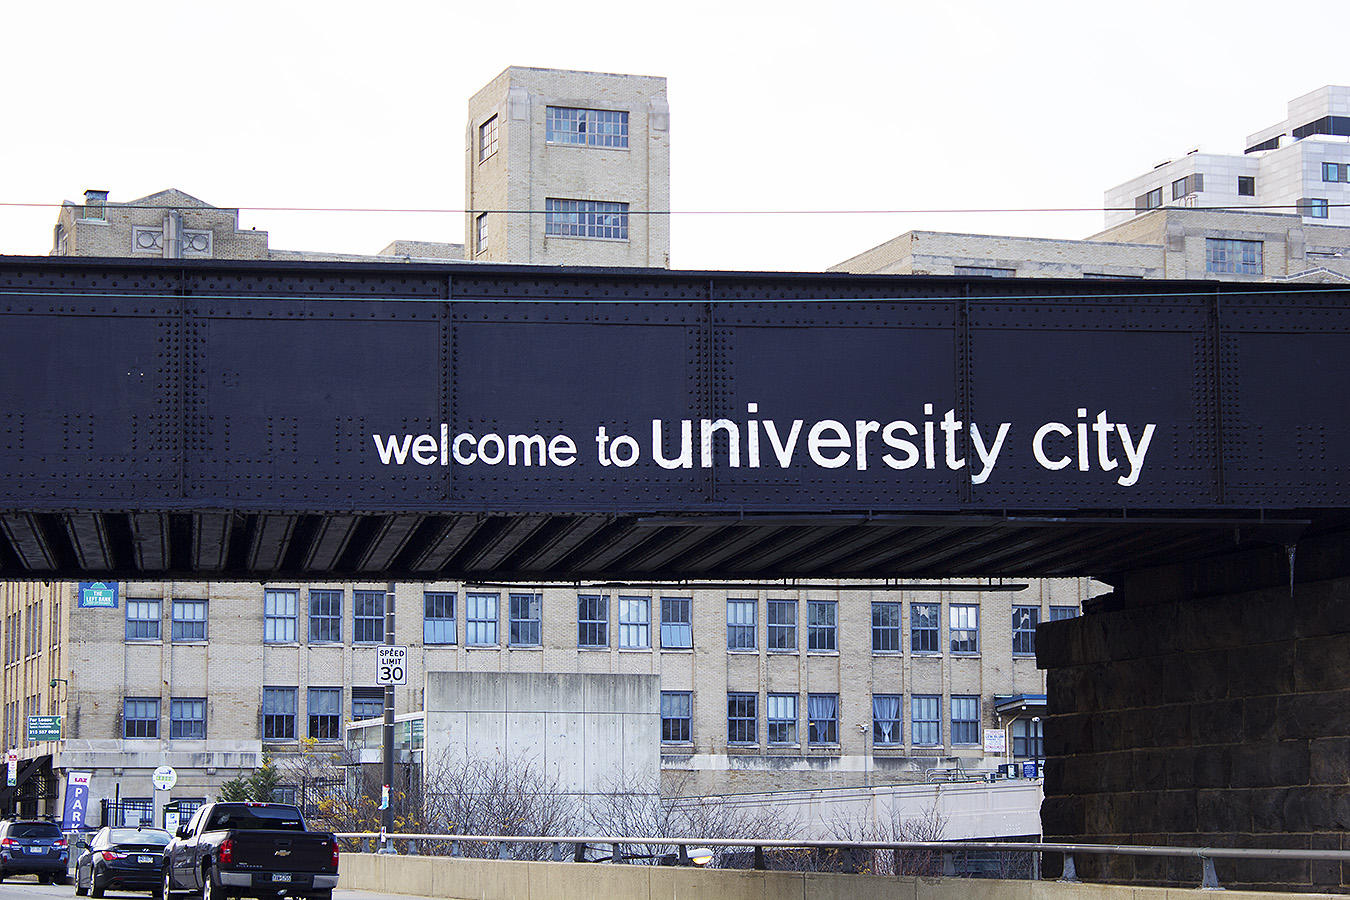 Anni_Liu_Photography_Individual_Project_9_University_City_Welcome_Sign